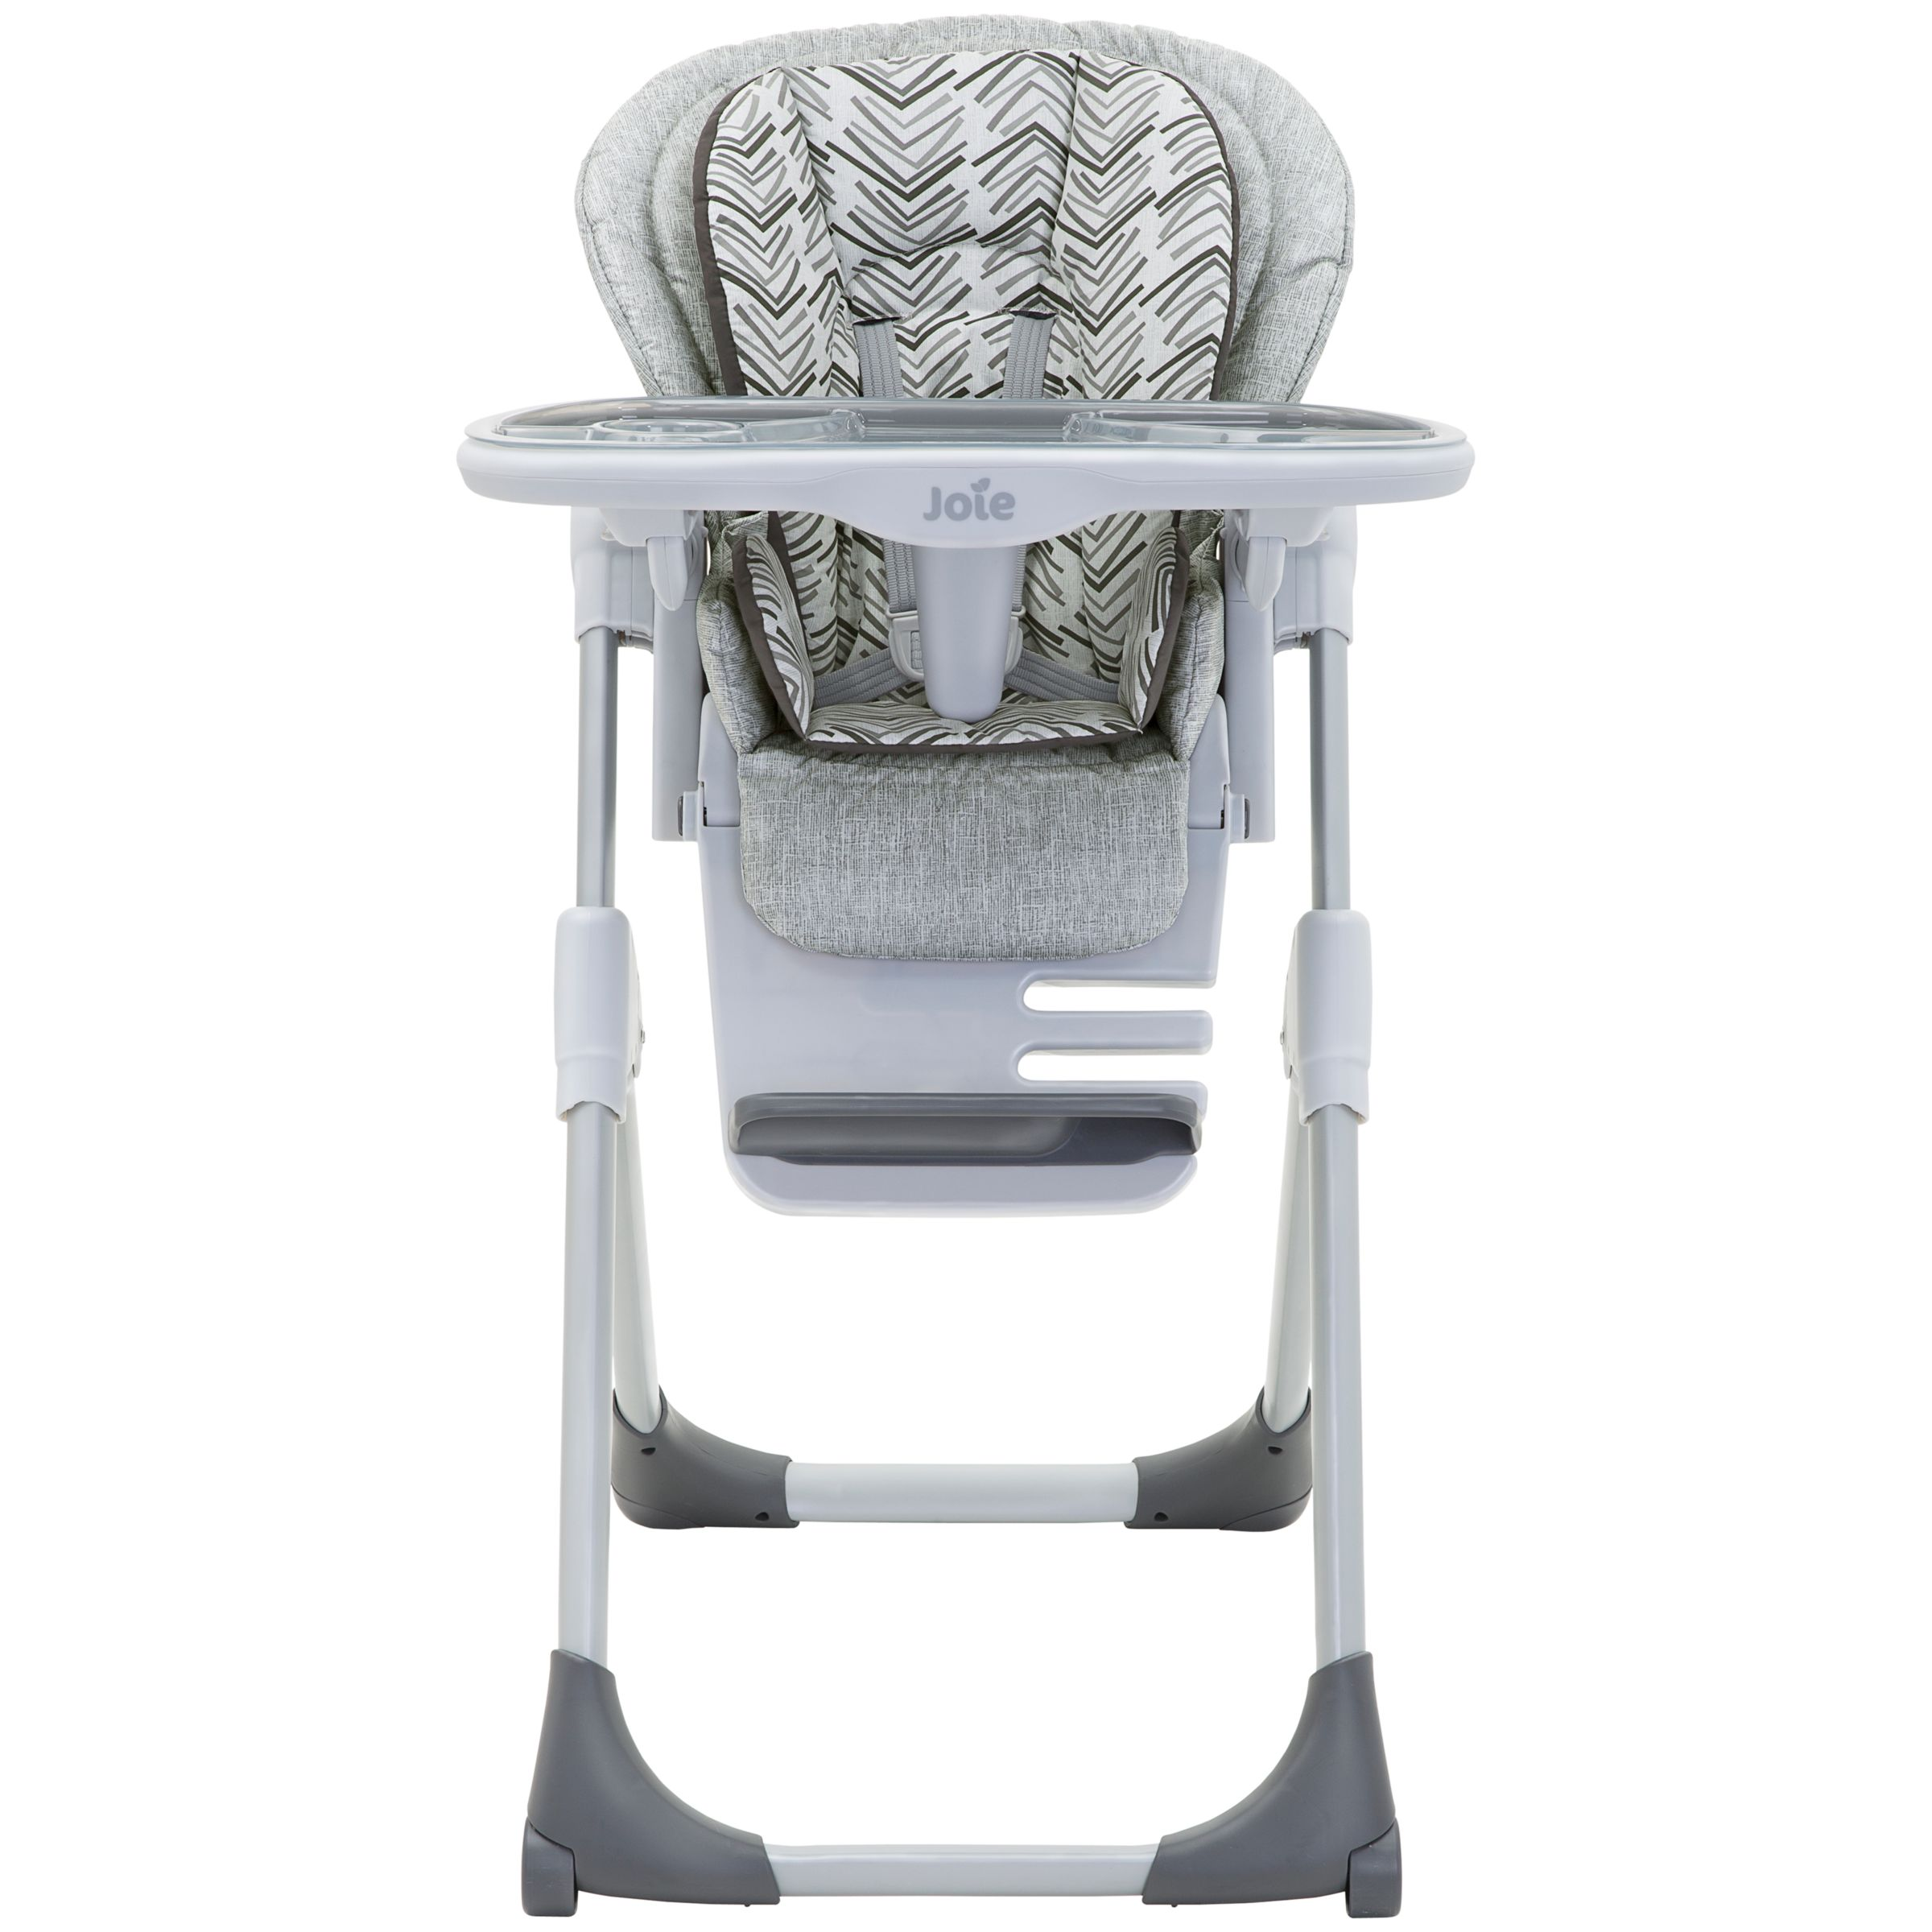 Joie Baby Joie Baby Mimzy LX Highchair, Abstract Arrow